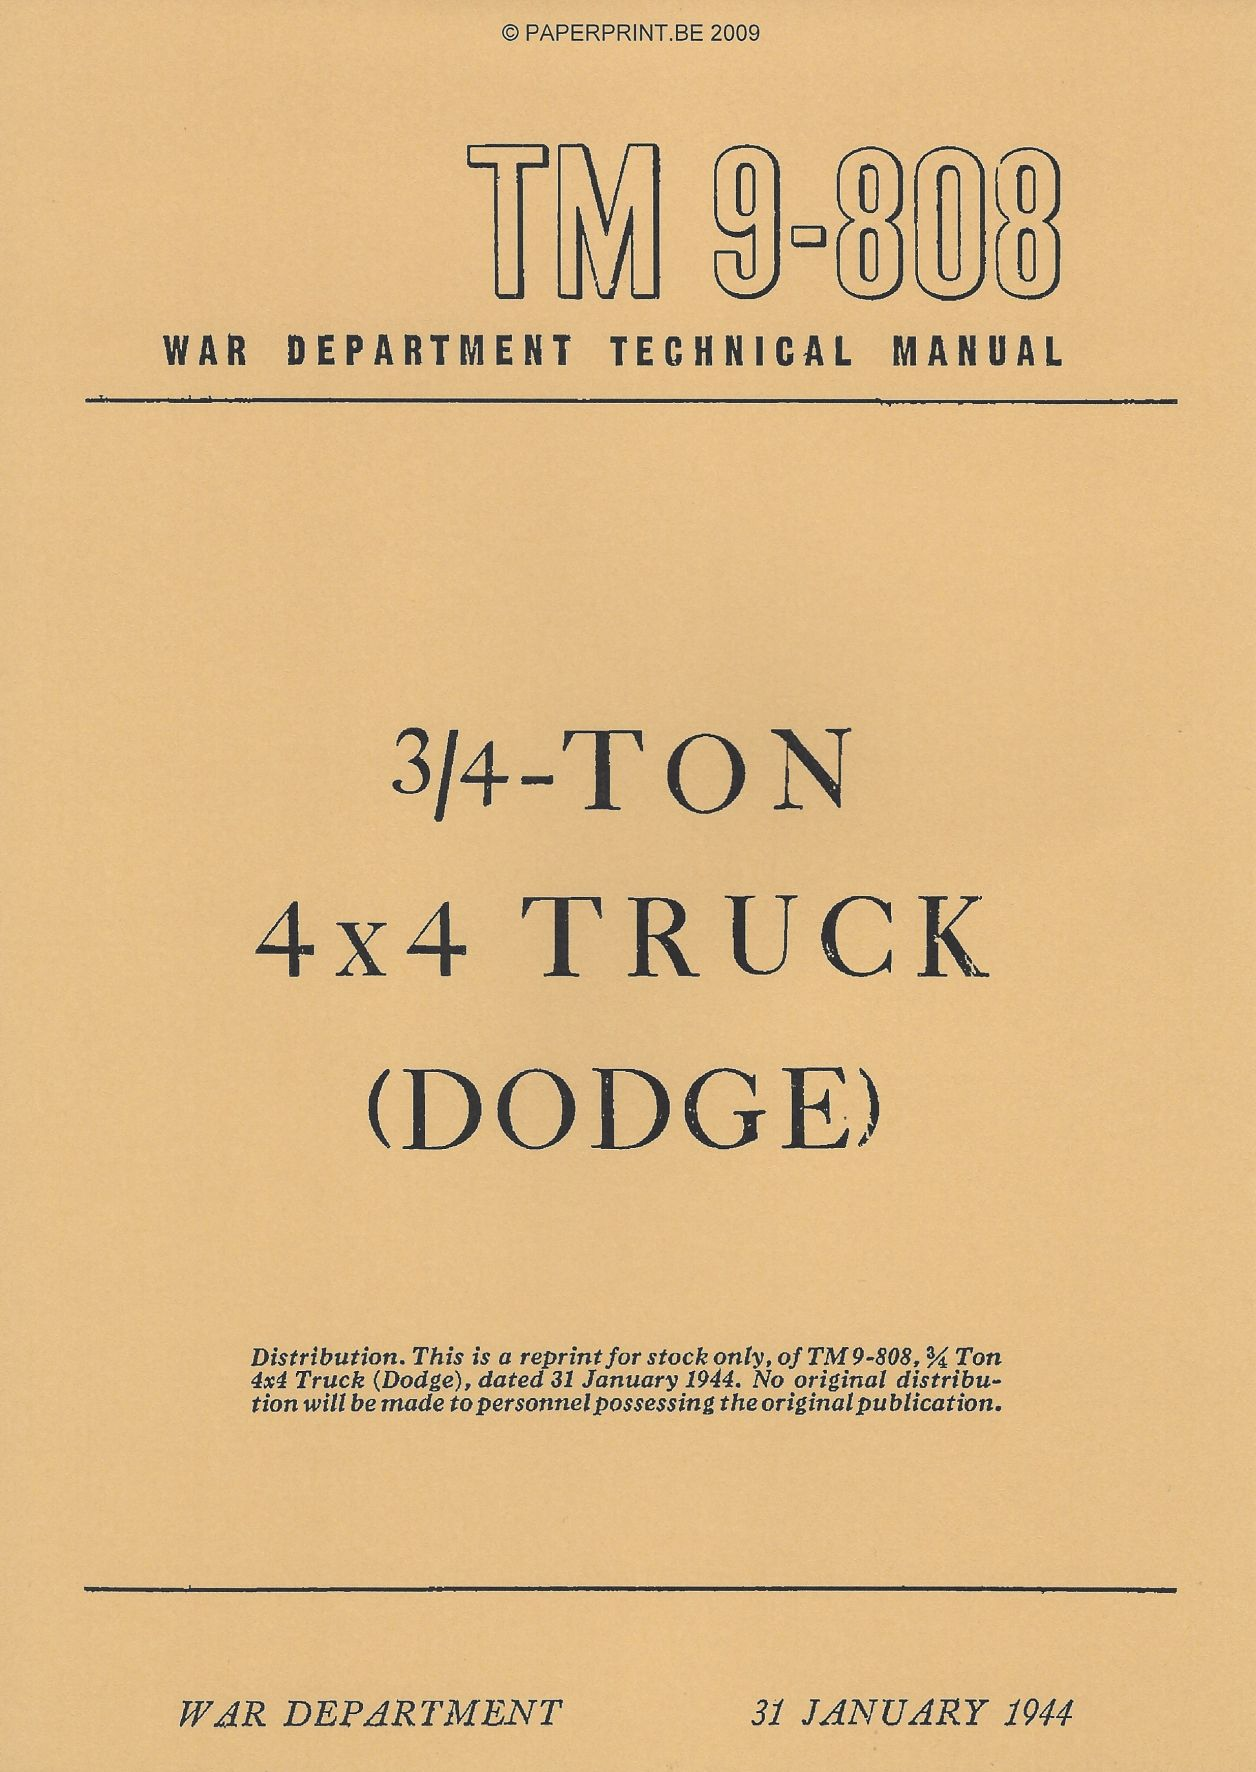 TM 9-808 1944 US ¾ - TON 4x4 TRUCK